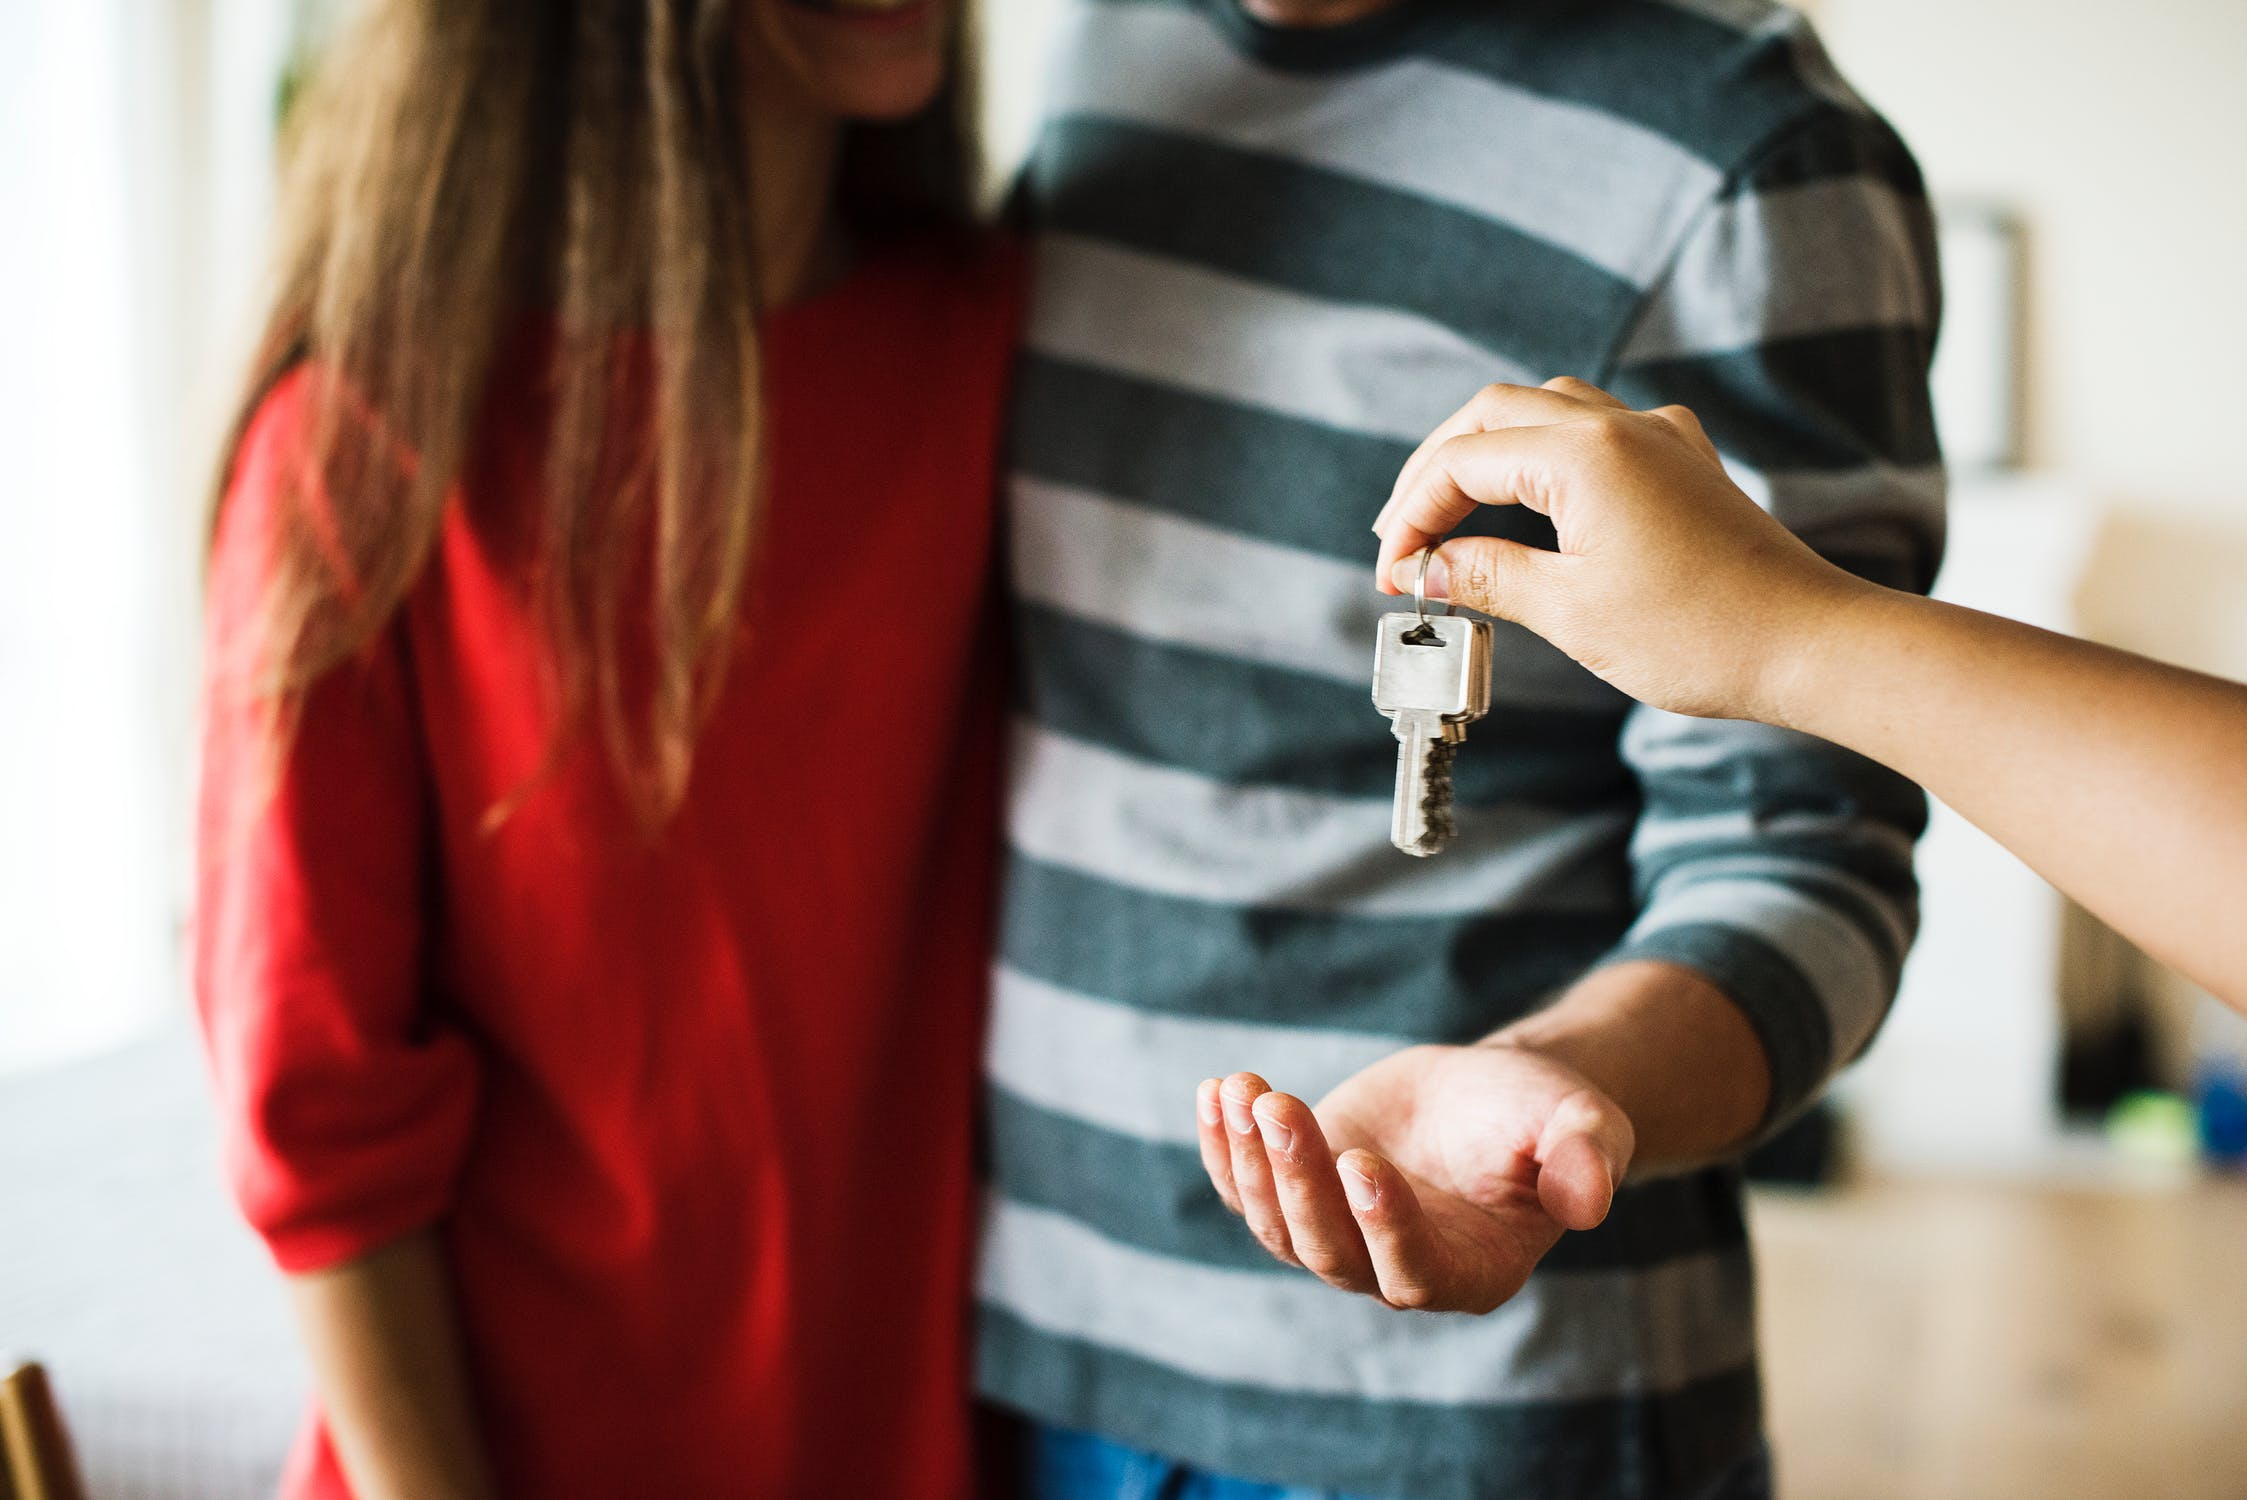 Things you should consider when searching for a mortgage